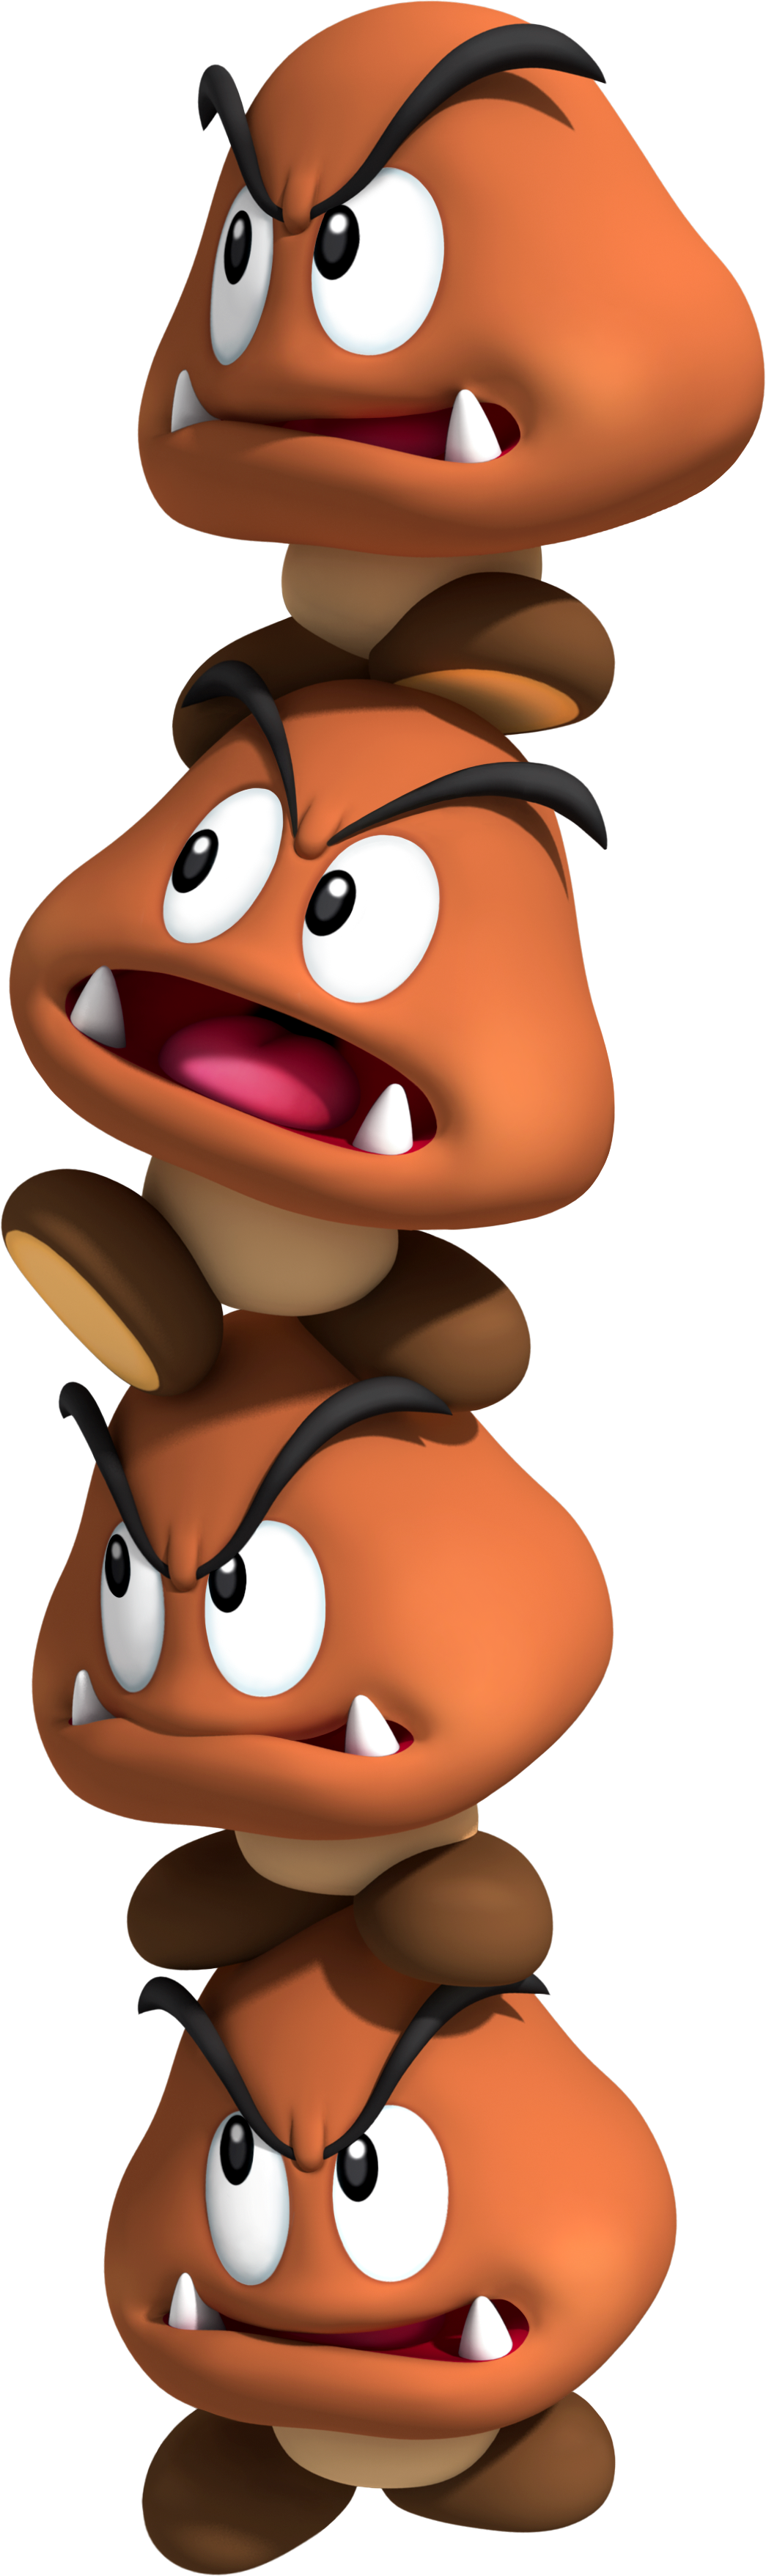 File:Goomba Tower.png